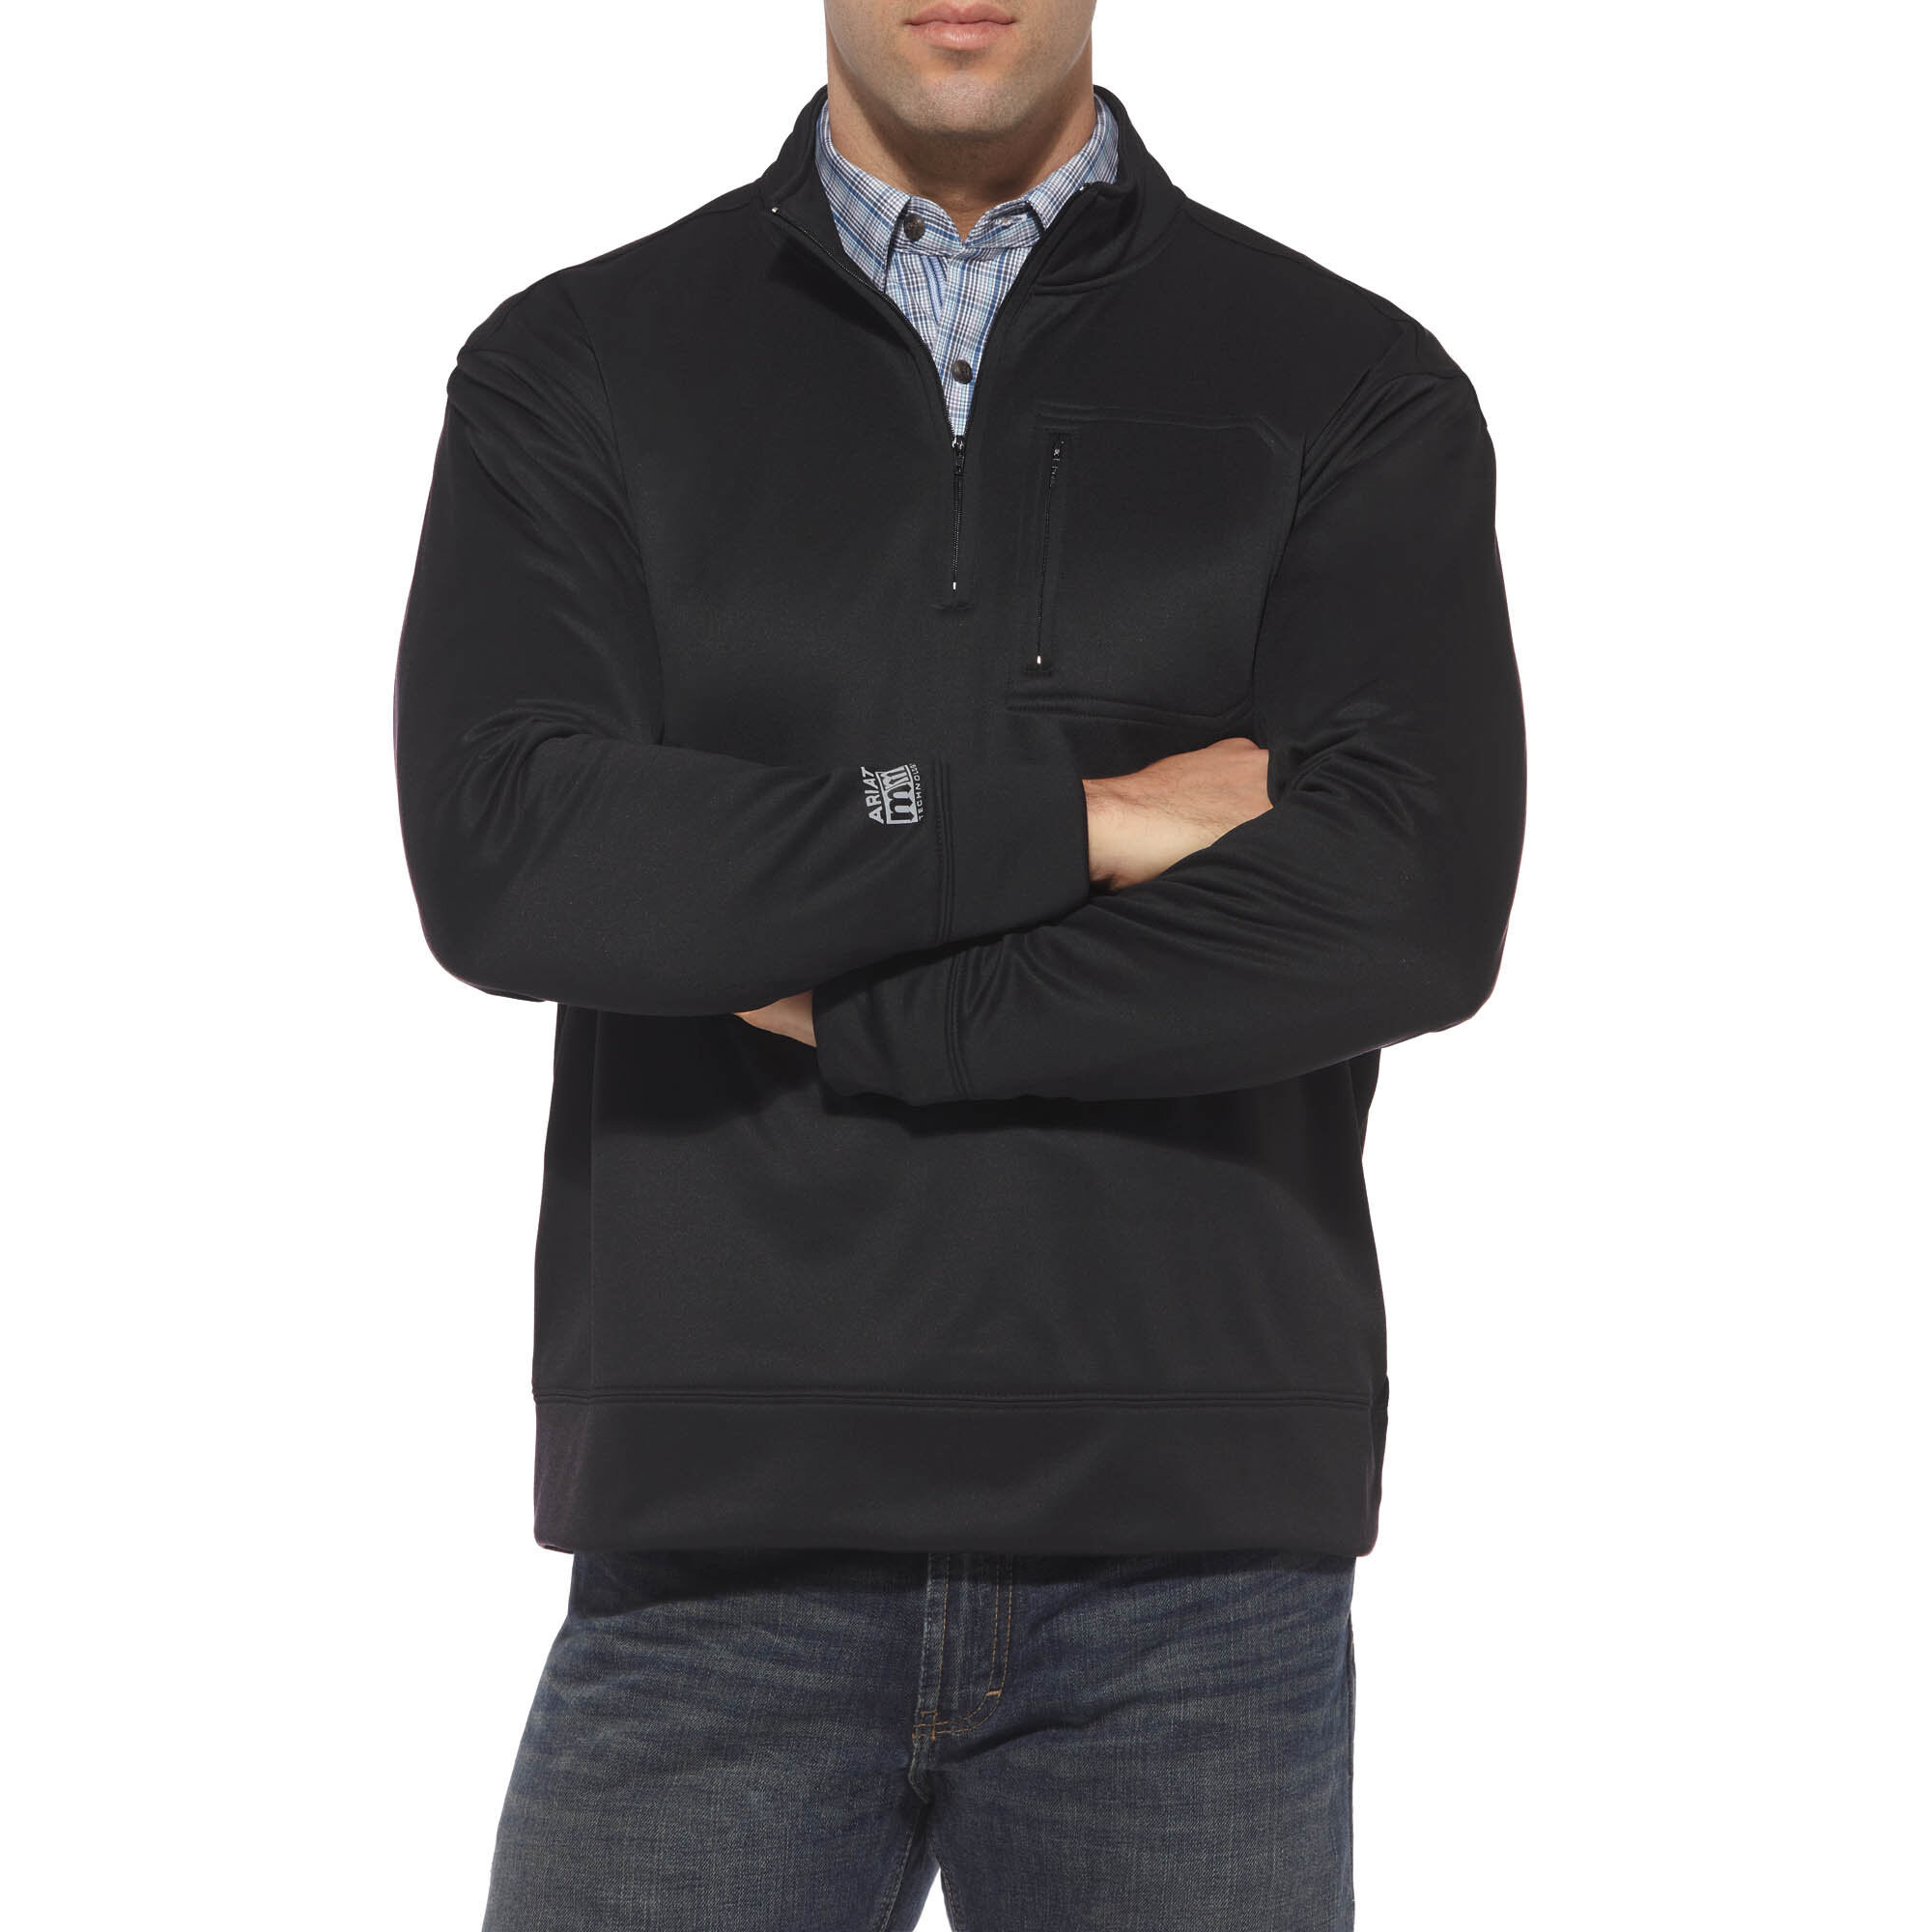 TEK Fleece 1/4 Zip Top